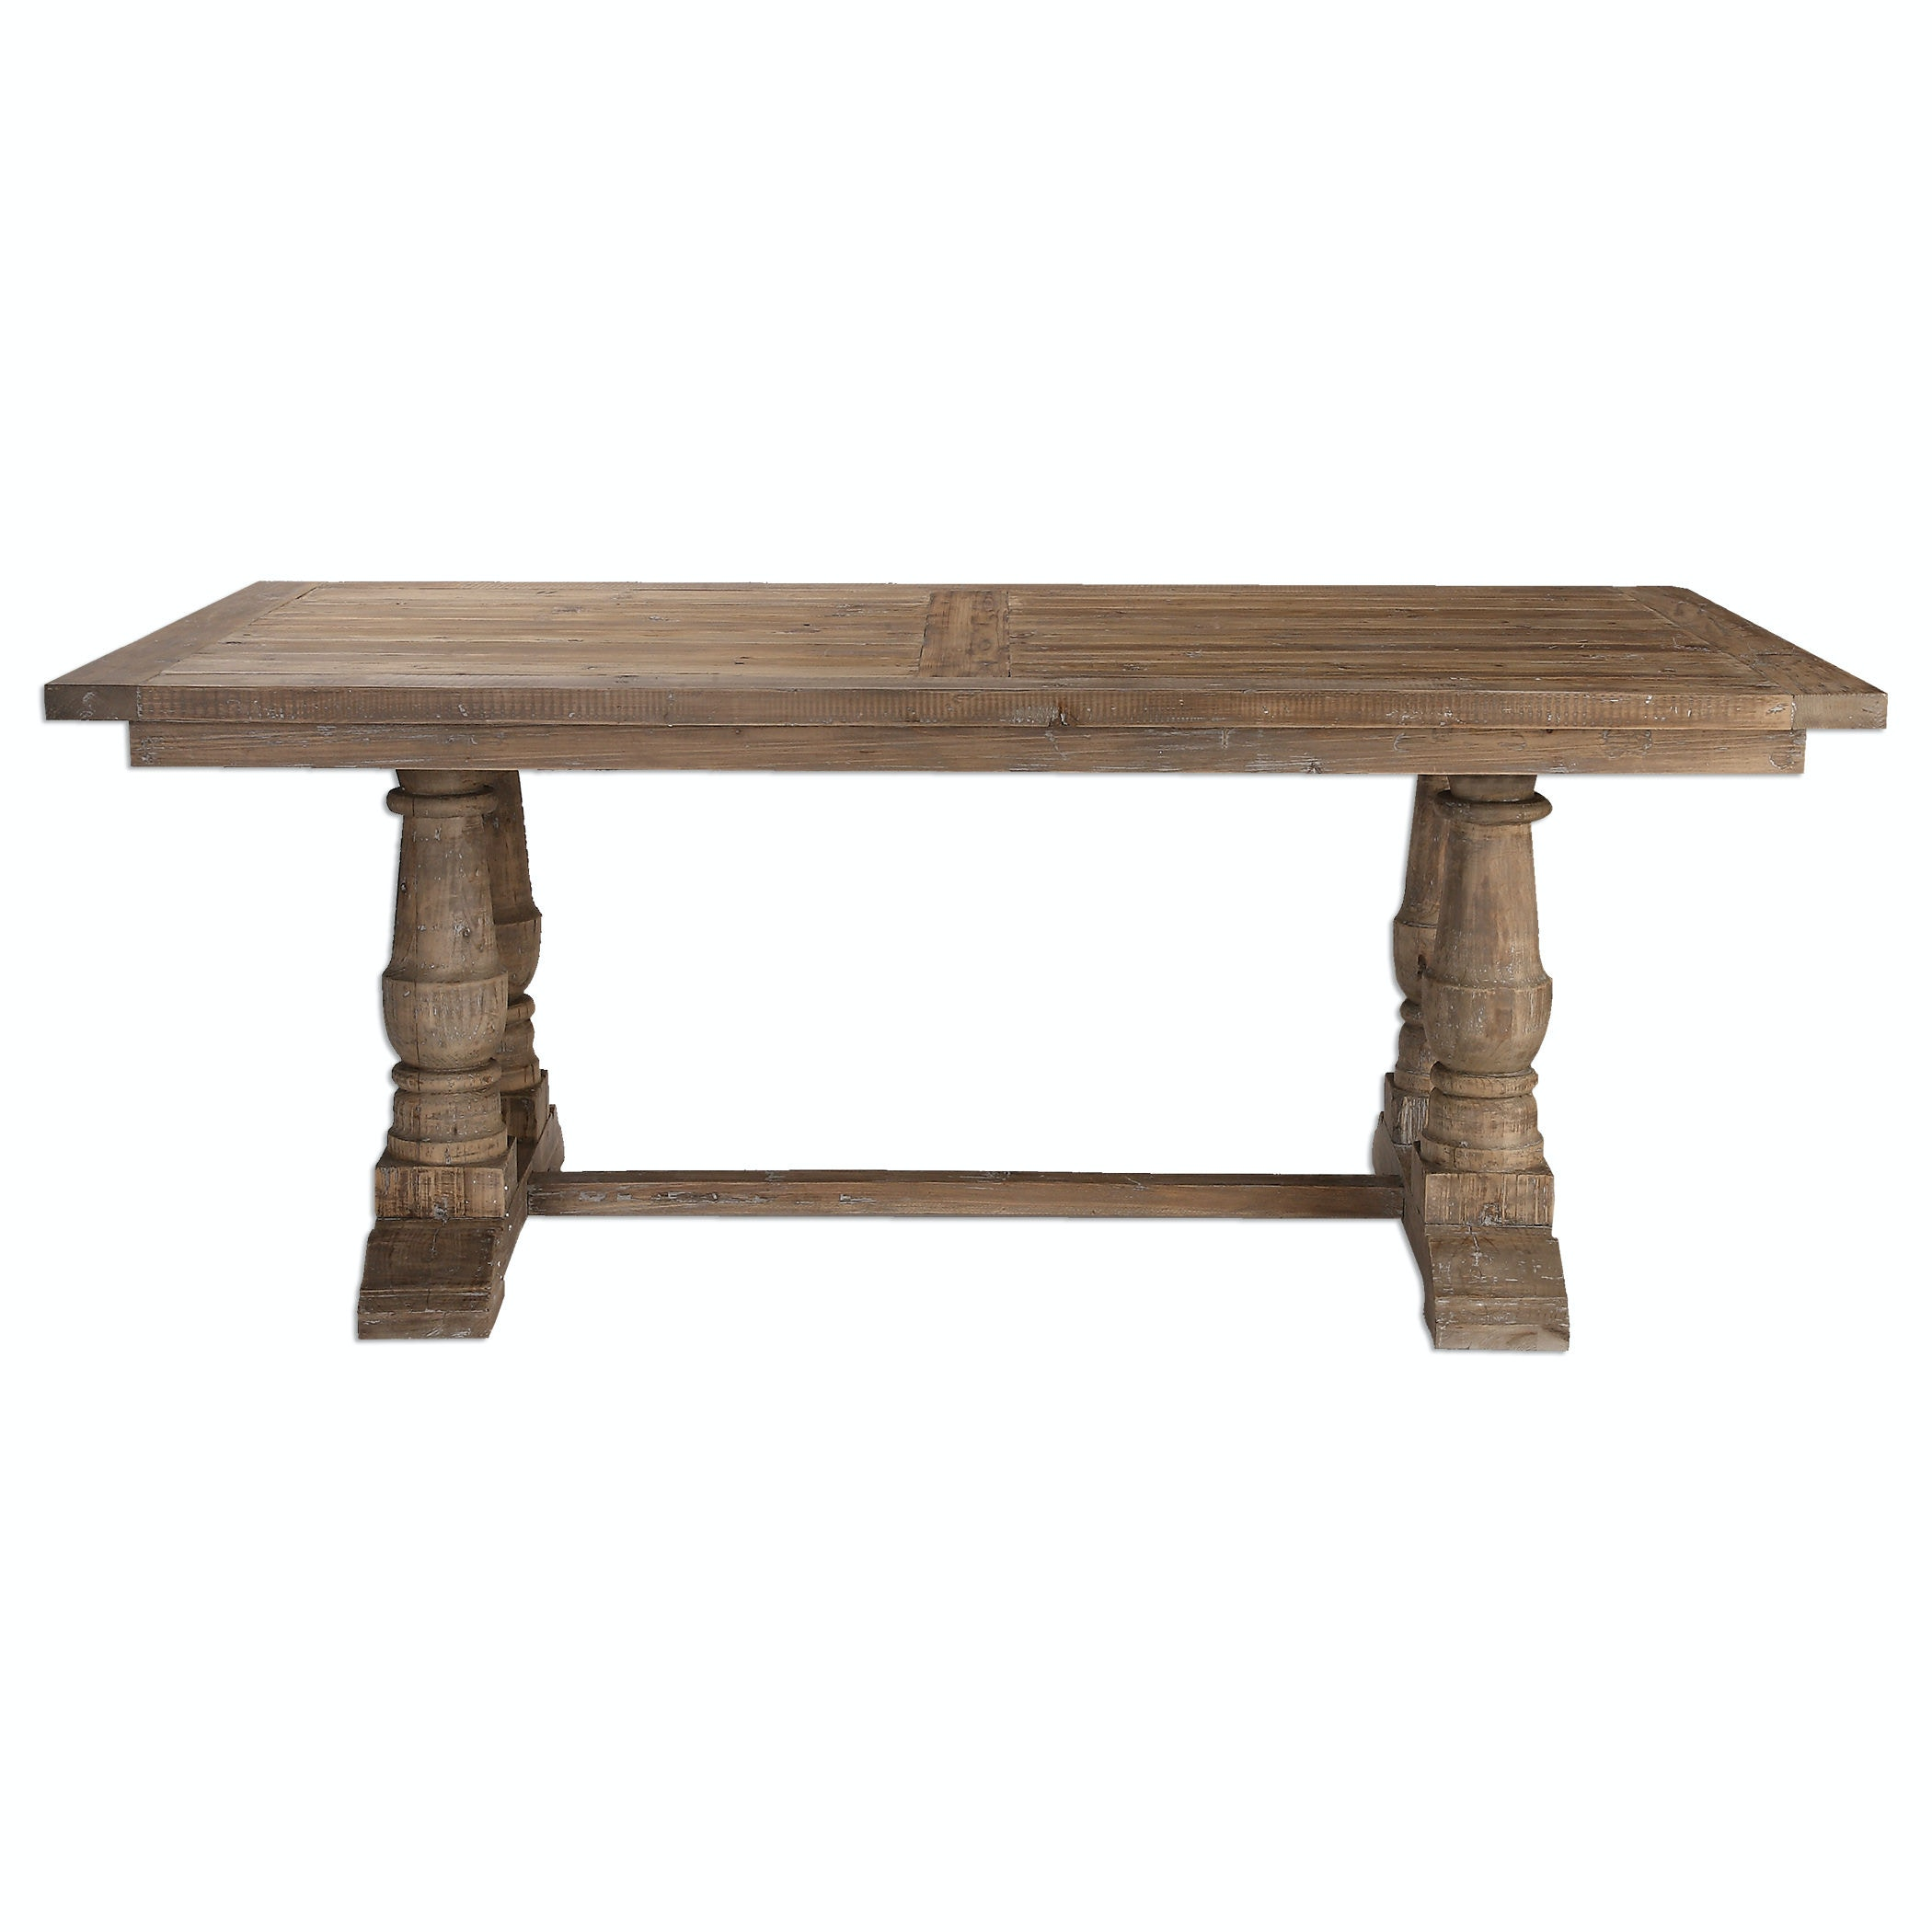 24557. Stratford Salvaged Wood Dining Table